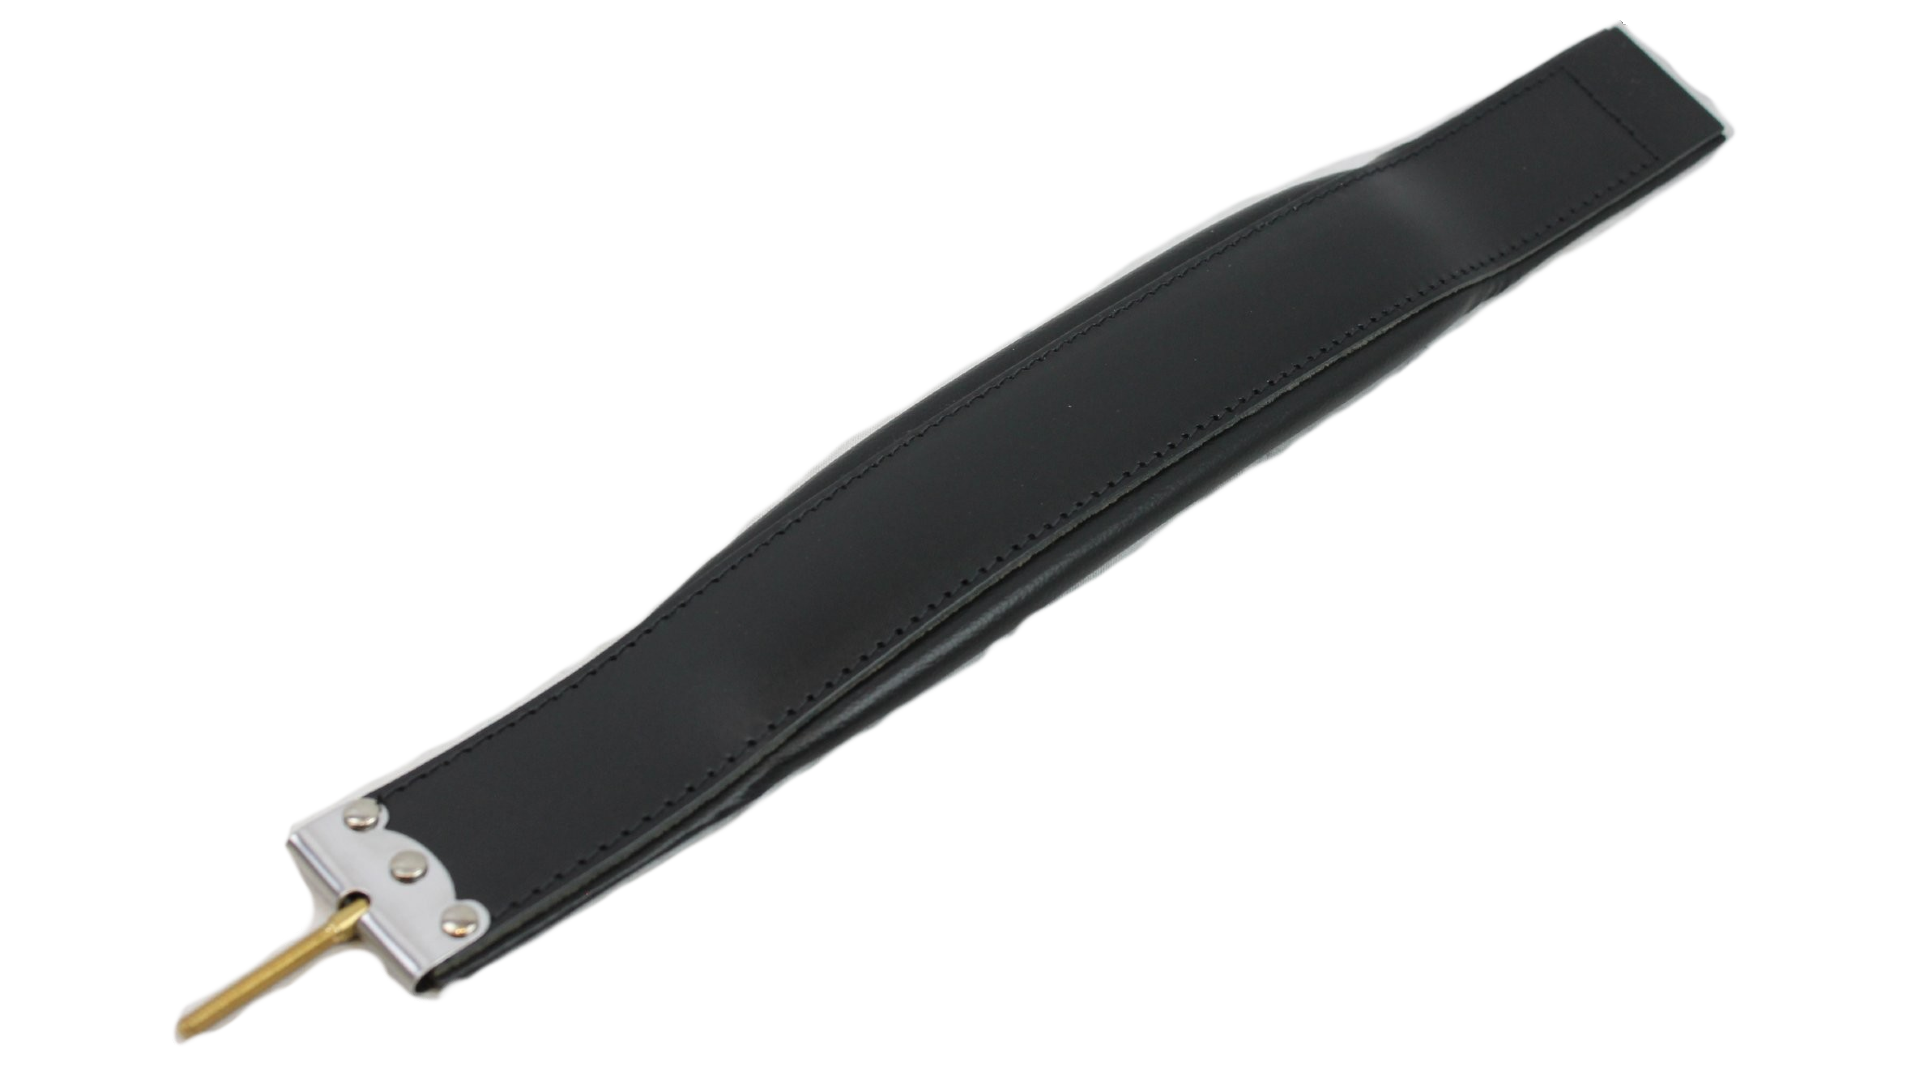 New Black Leather Fuselli Accordion Bass Hand Strap Width (2.5in/6.5cm) Length (17.75in/45cm)